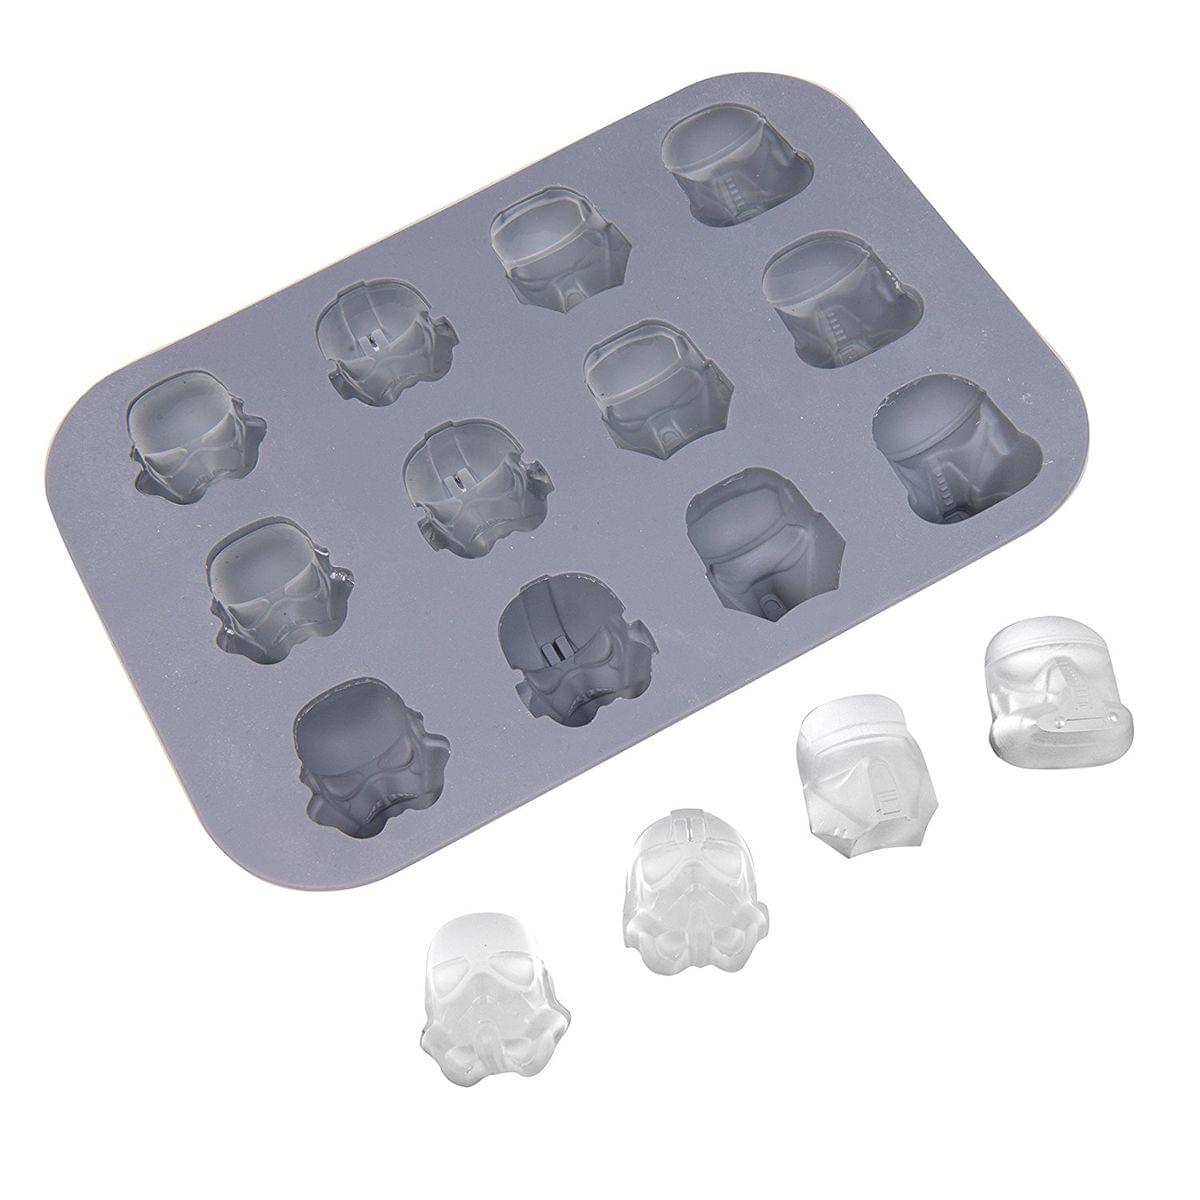 Star Wars Troopers Silicone Ice Cube Tray - image 1 de 1